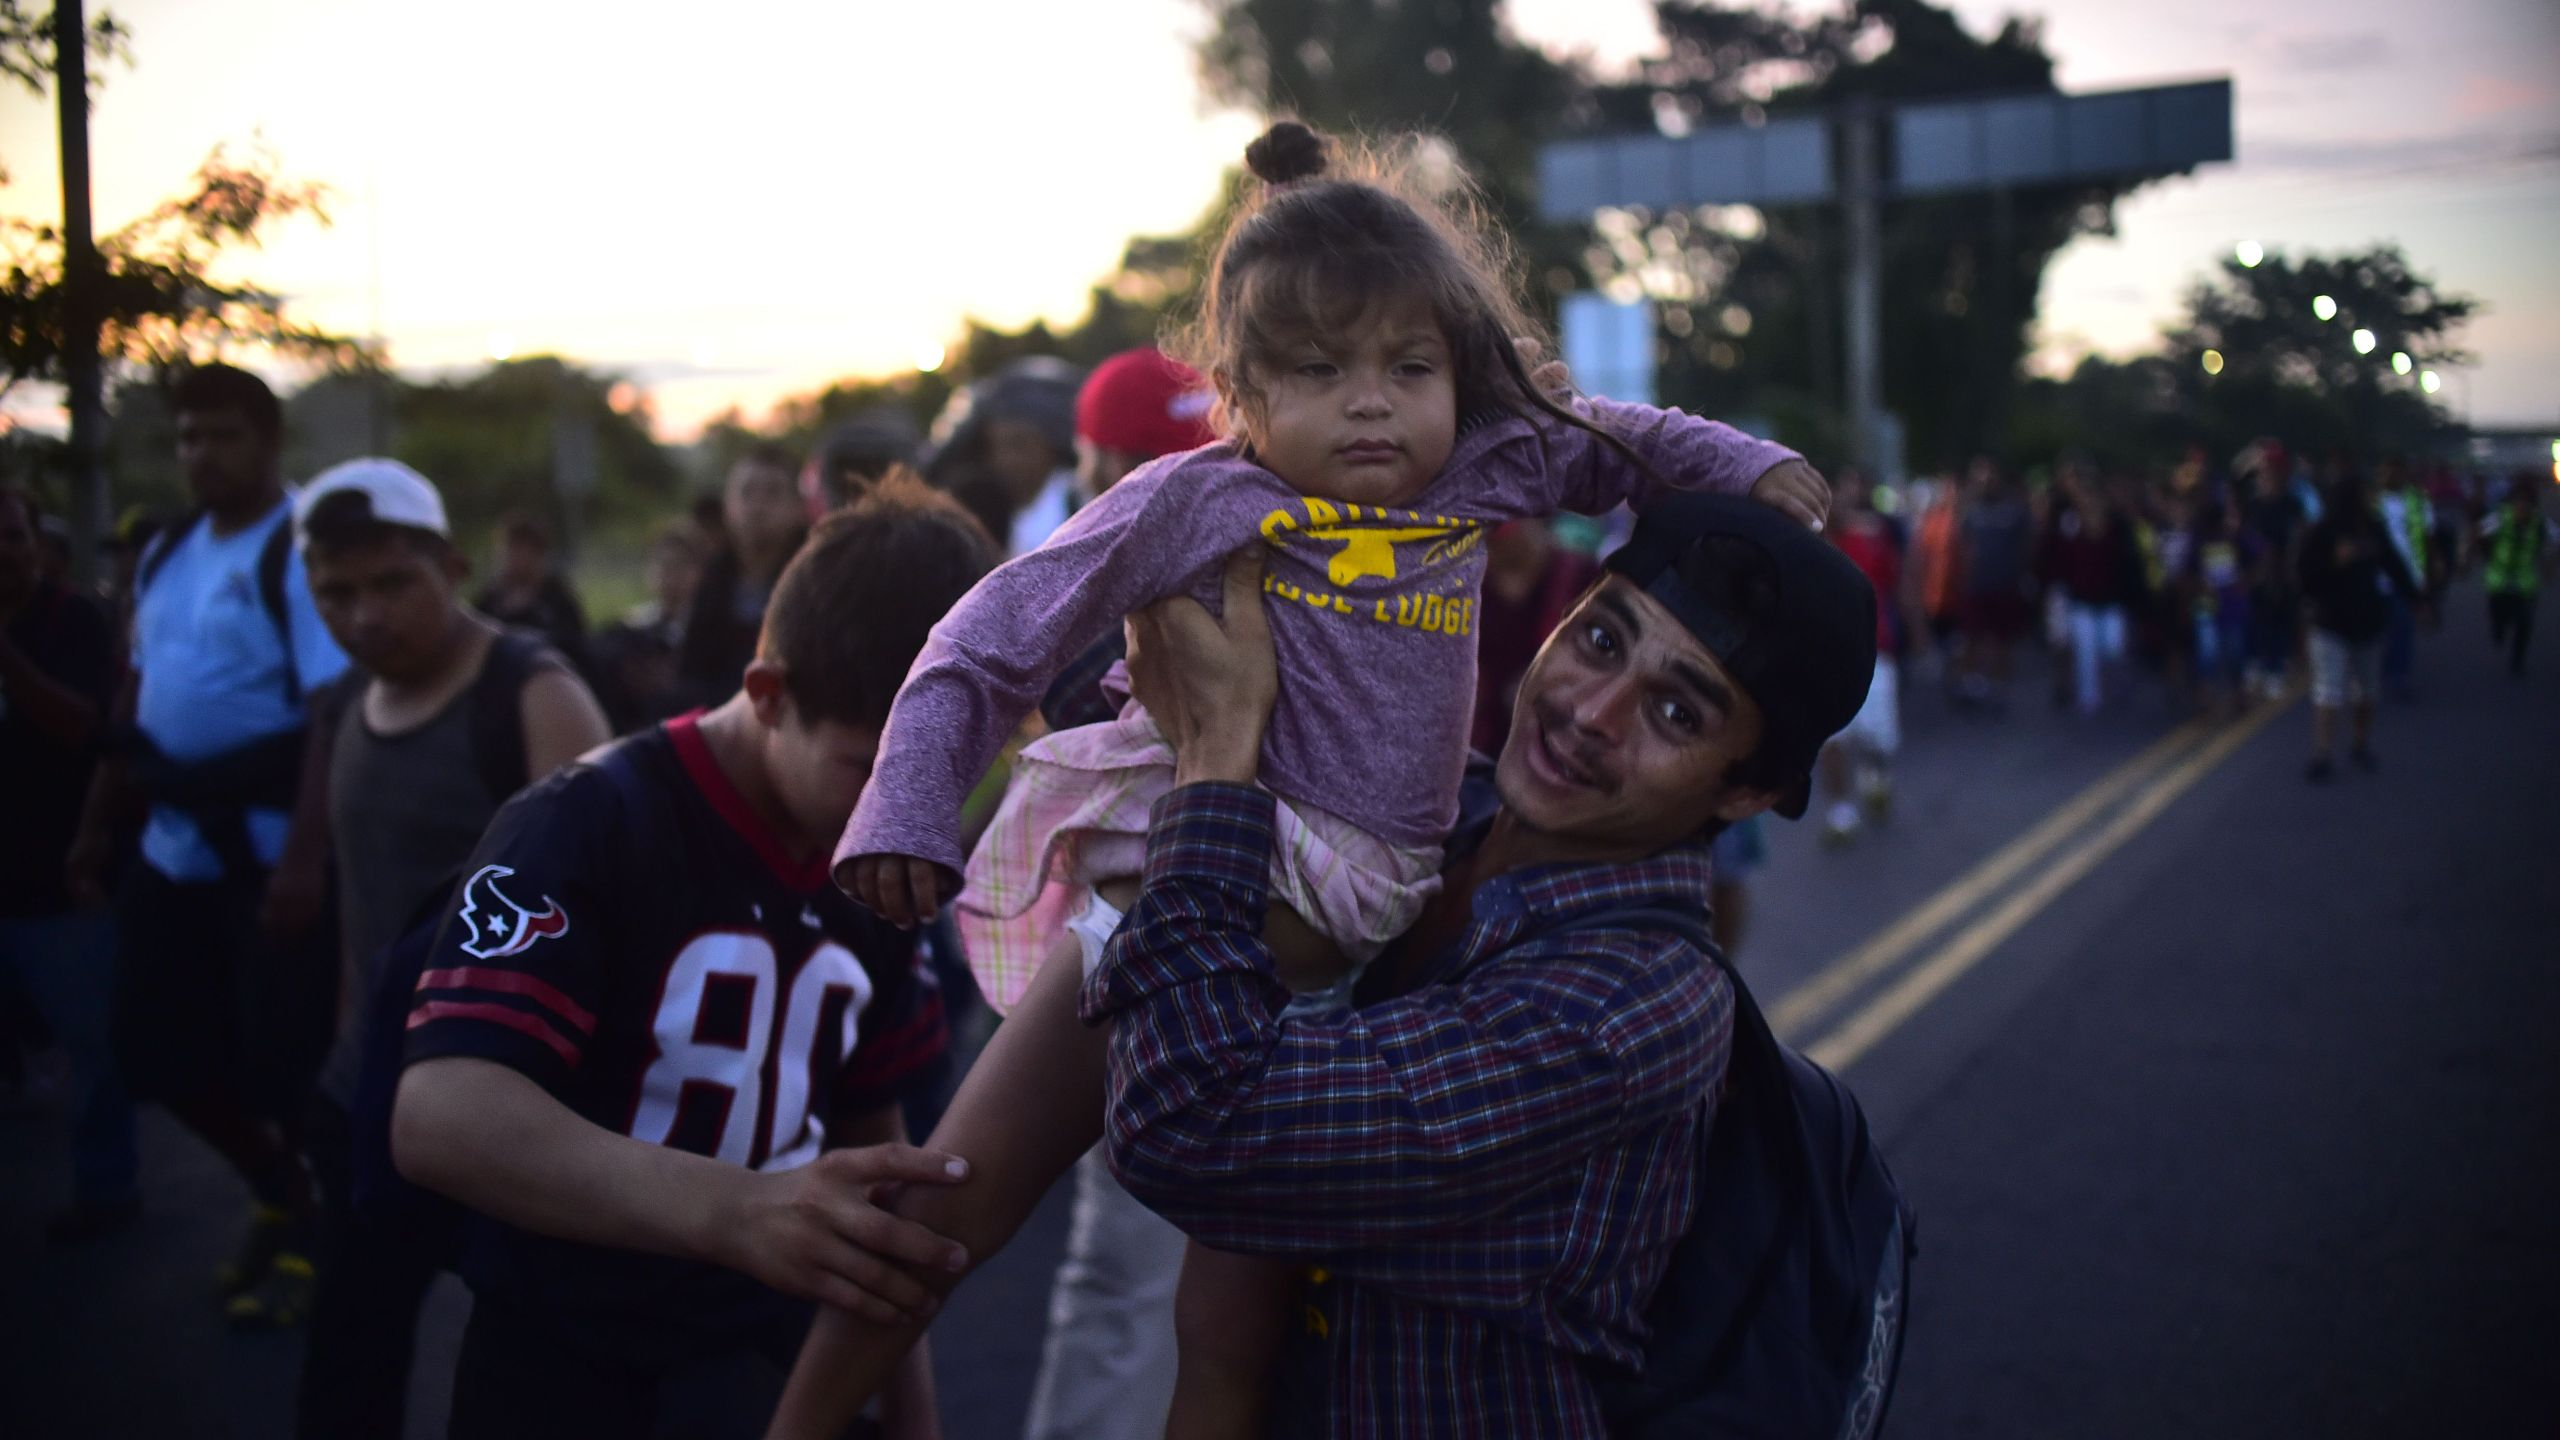 A Honduran migrant holds up a baby as they take part in a caravan heading to the U.S. on the road linking Ciudad Hidalgo and Tapachula, Chiapas state, Mexico, on Oct. 21, 2018. (Credit: PEDRO PARDO/AFP/Getty Images)